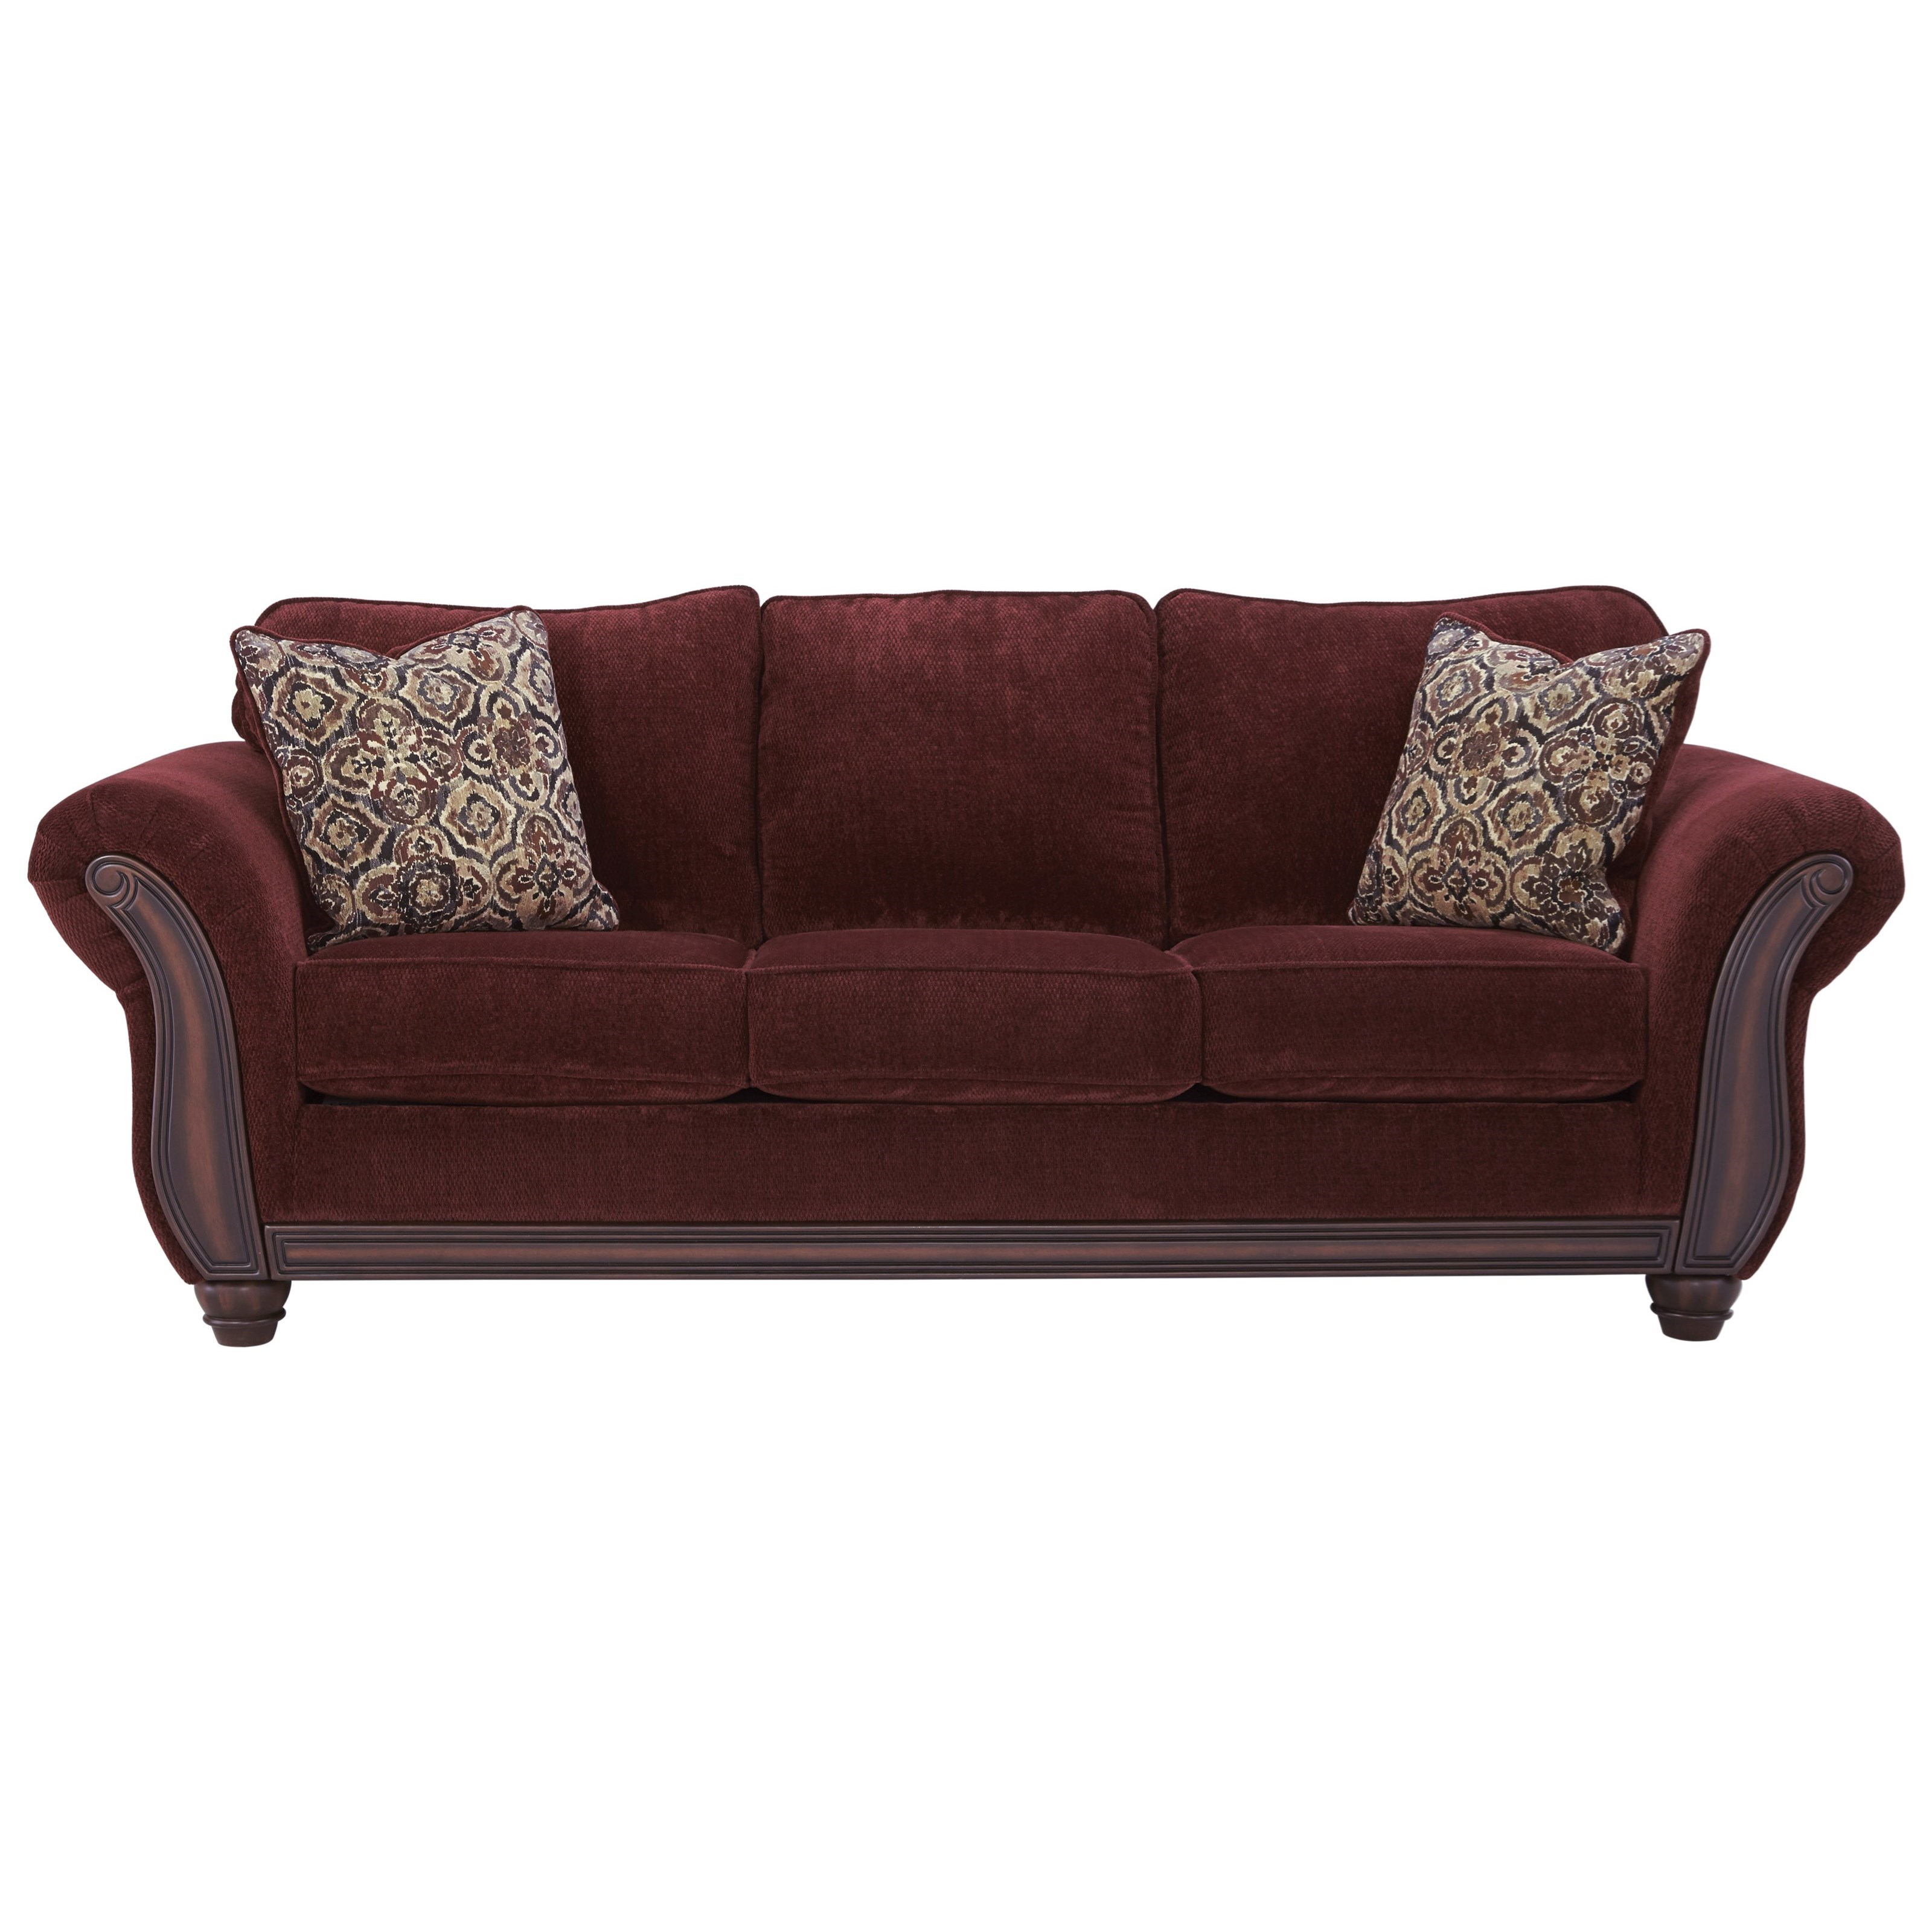 Signature Design by Ashley Chesterbrook Sofa - Item Number: 8810238